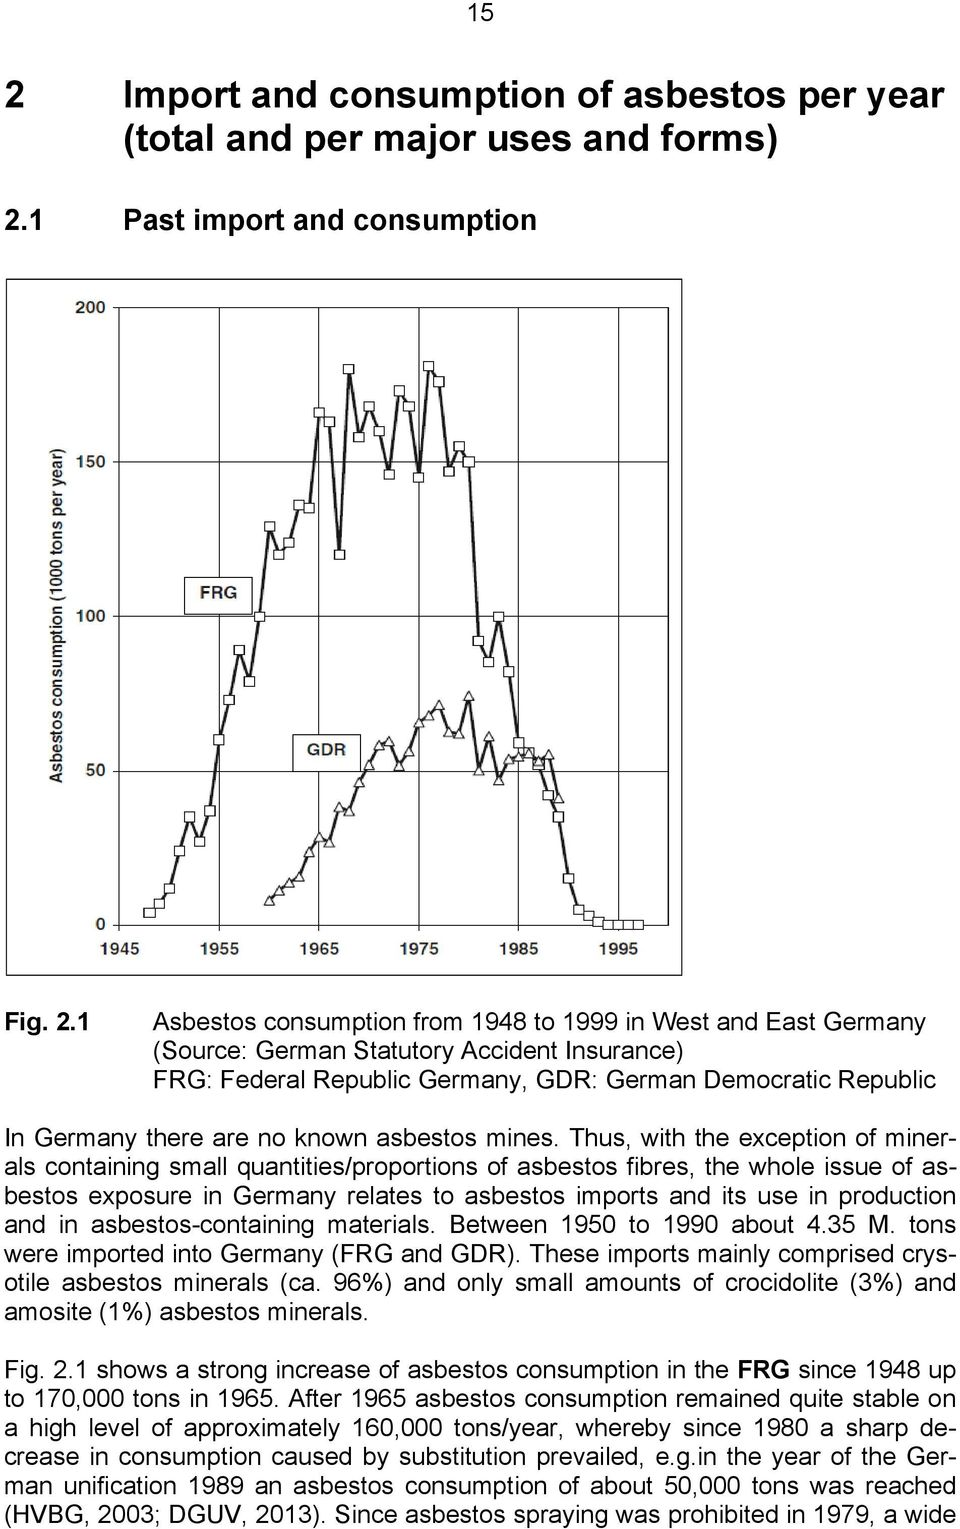 Thus, with the exception of minerals containing small quantities/proportions of asbestos fibres, the whole issue of asbestos exposure in Germany relates to asbestos imports and its use in production